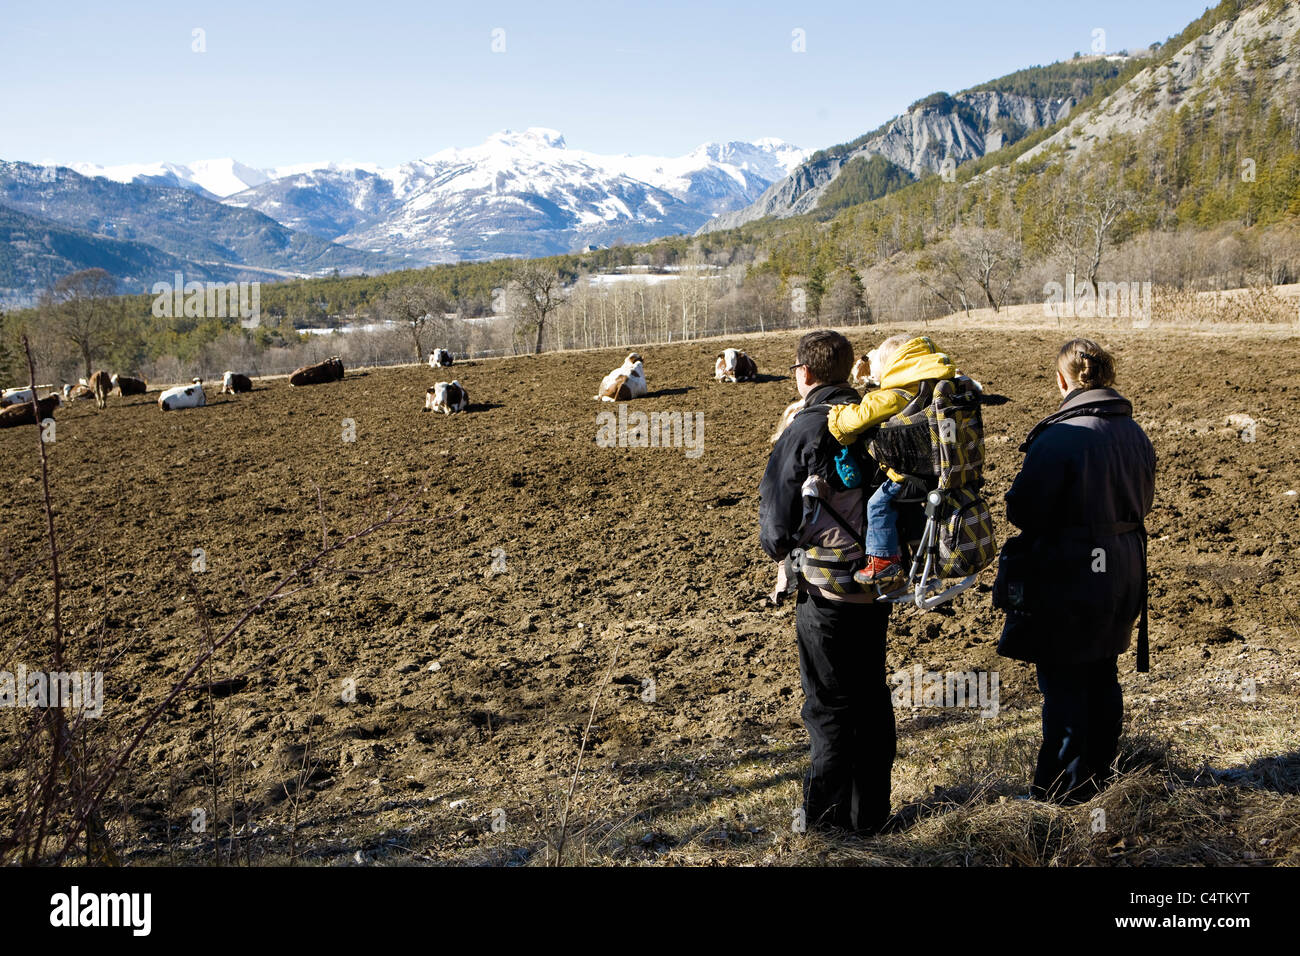 Family hiking together, looking at cows in mountain pasture - Stock Image